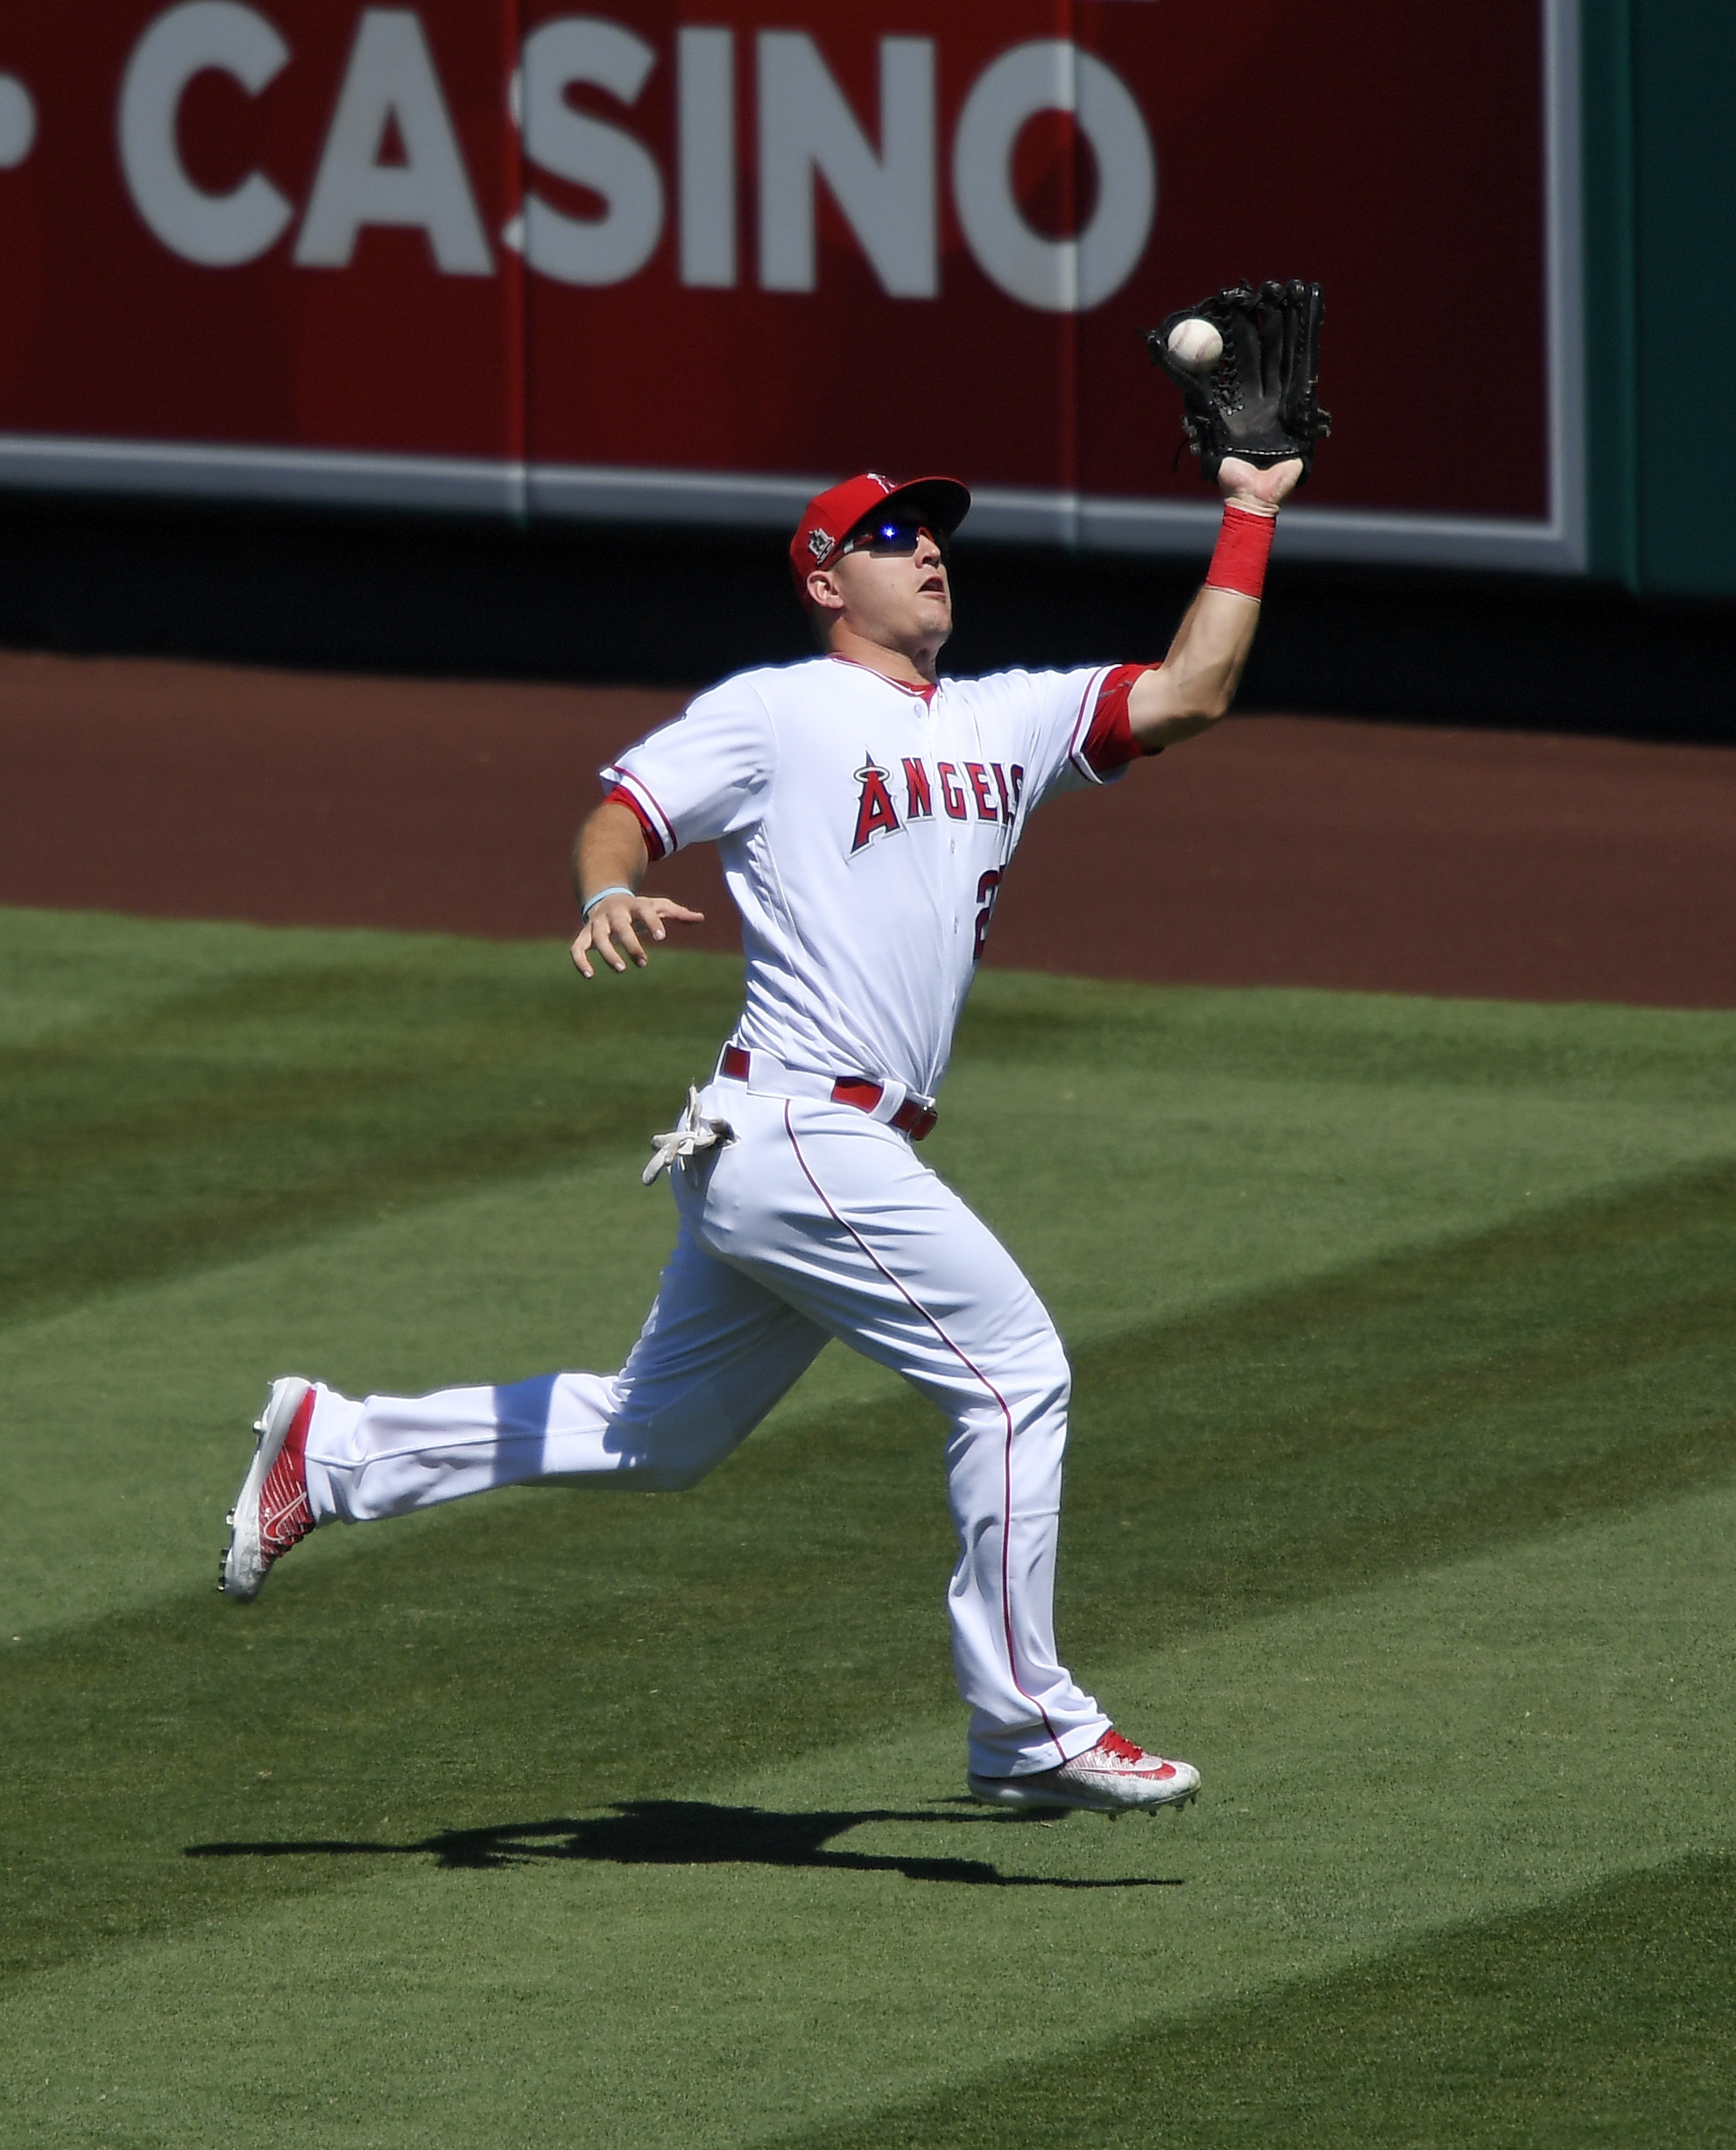 Los Angeles Angels center fielder Mike Trout makes a catch on a ball hit by Texas Rangers' Robinson Chirinos during the third inning of a baseball game, Sunday, Sept. 11, 2016, in Anaheim, Calif. (AP Photo/Mark J. Terrill)